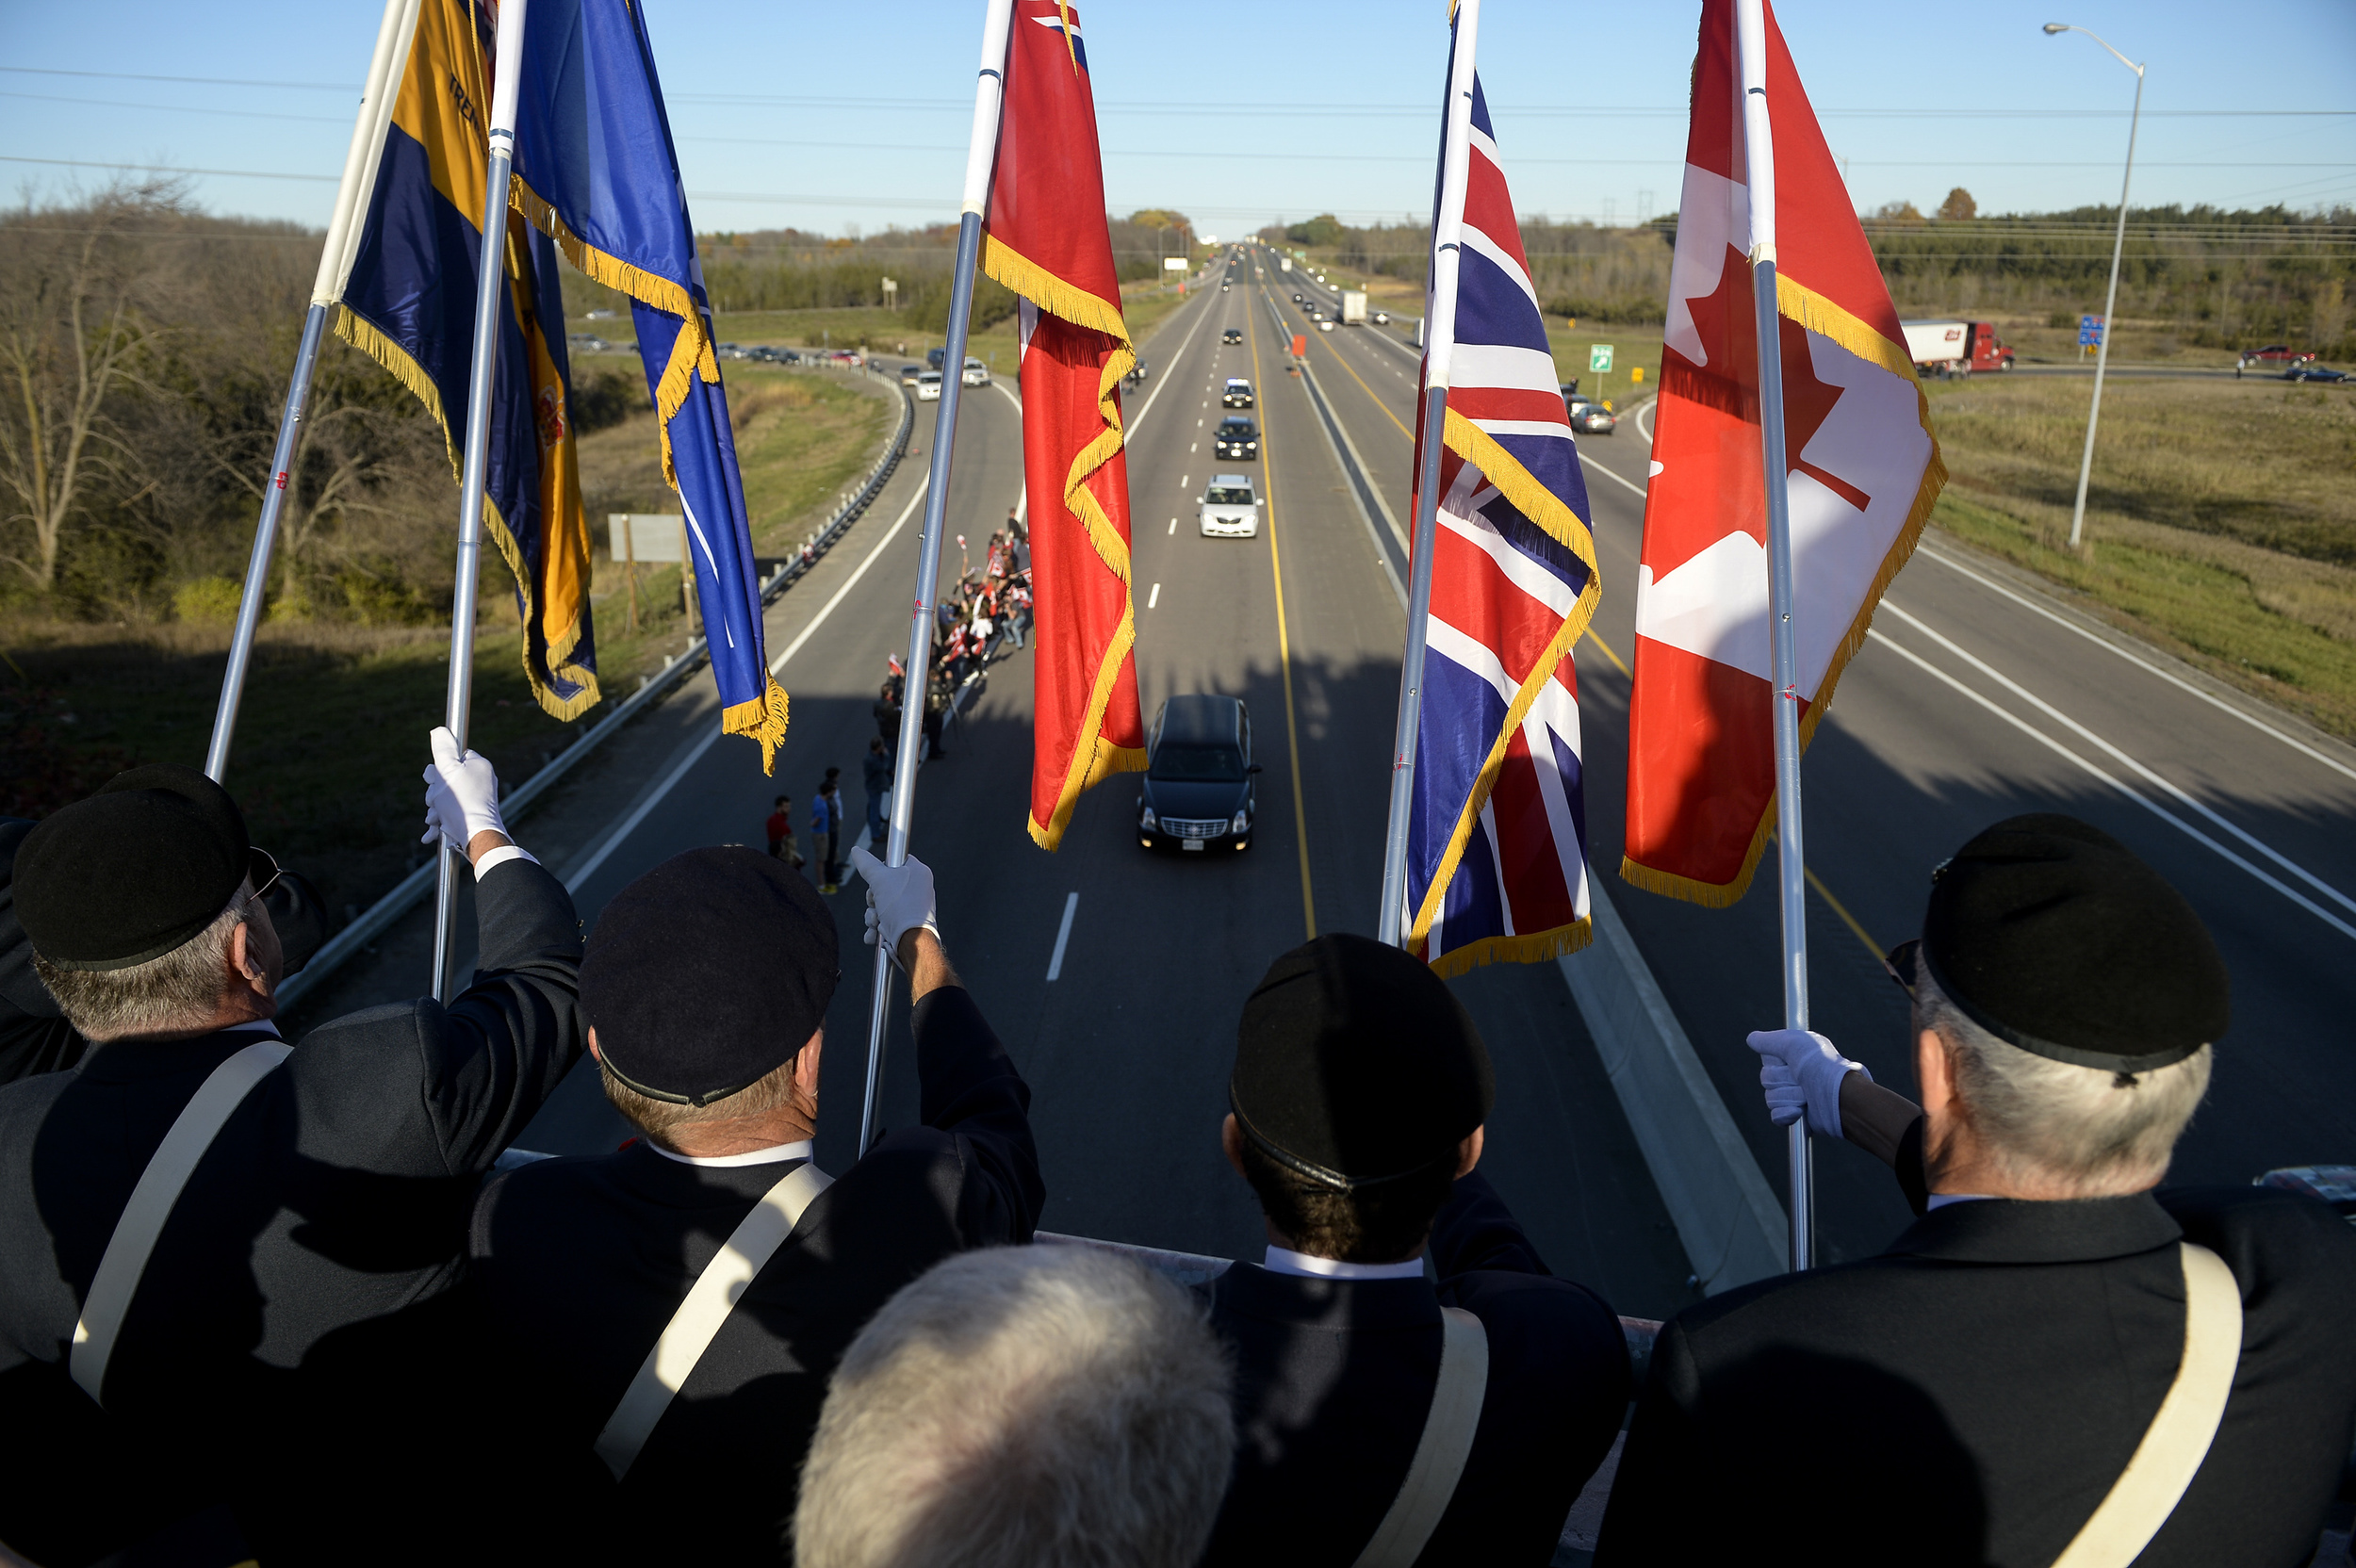 The procession for Cpl. Nathan Cirillo passes under the Glen Miller Rd. overpass in Trenton, Ont. on Oct. 24, 2014.